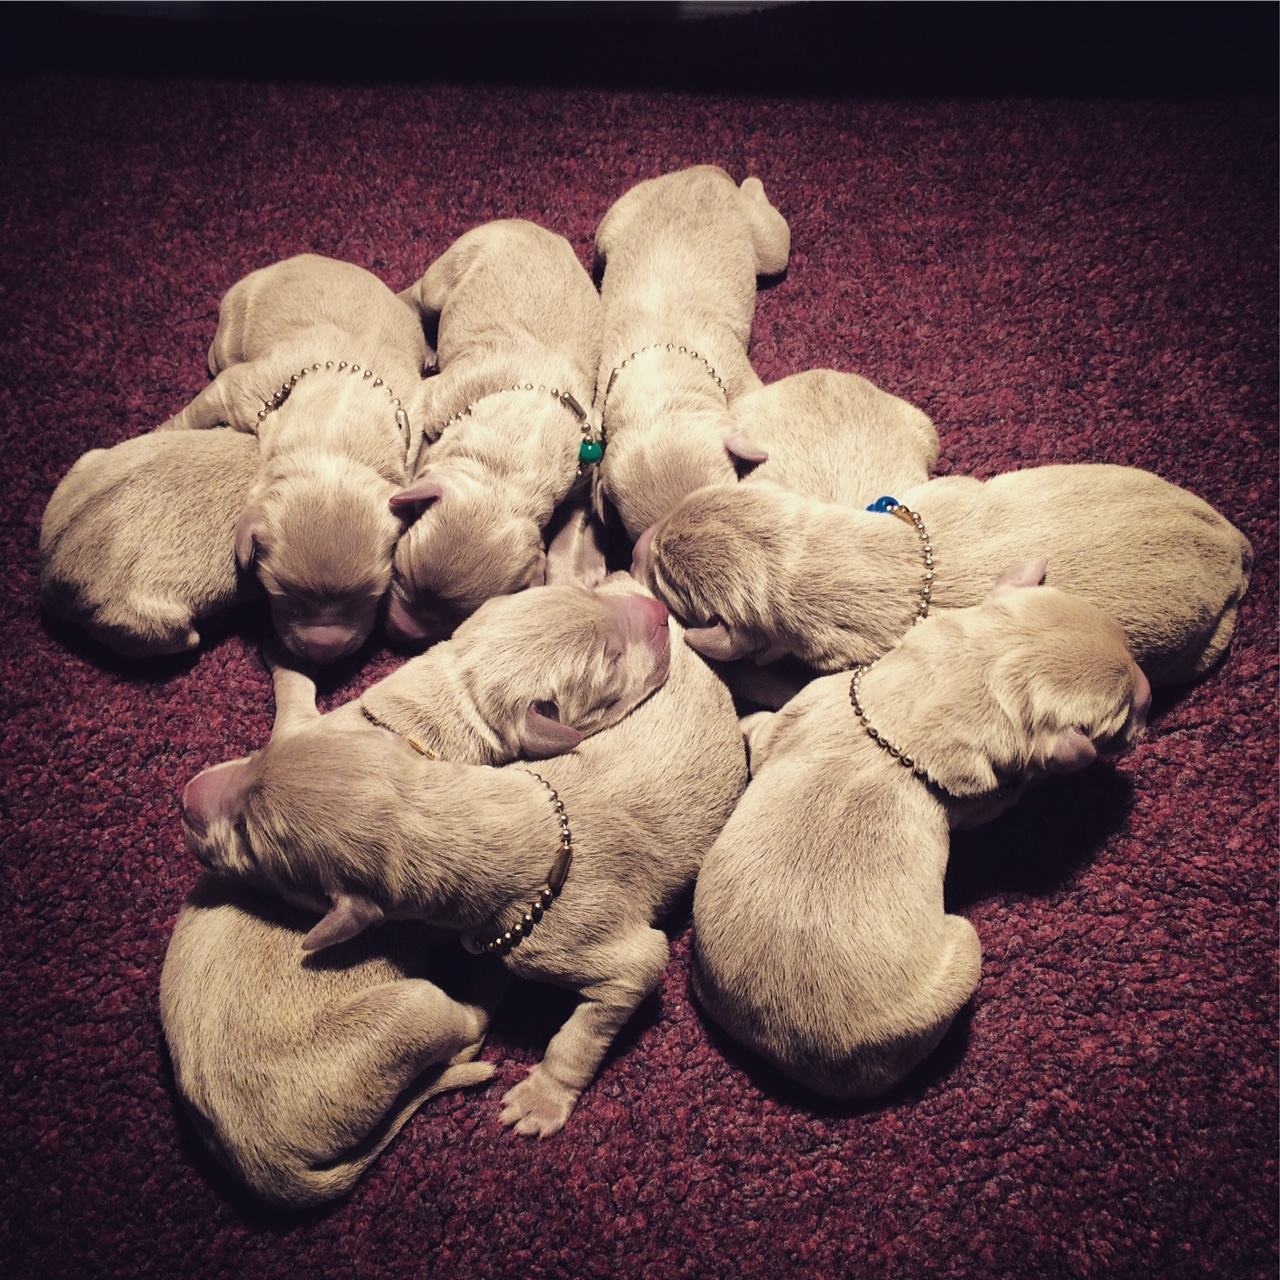 All Nine - 1 day old